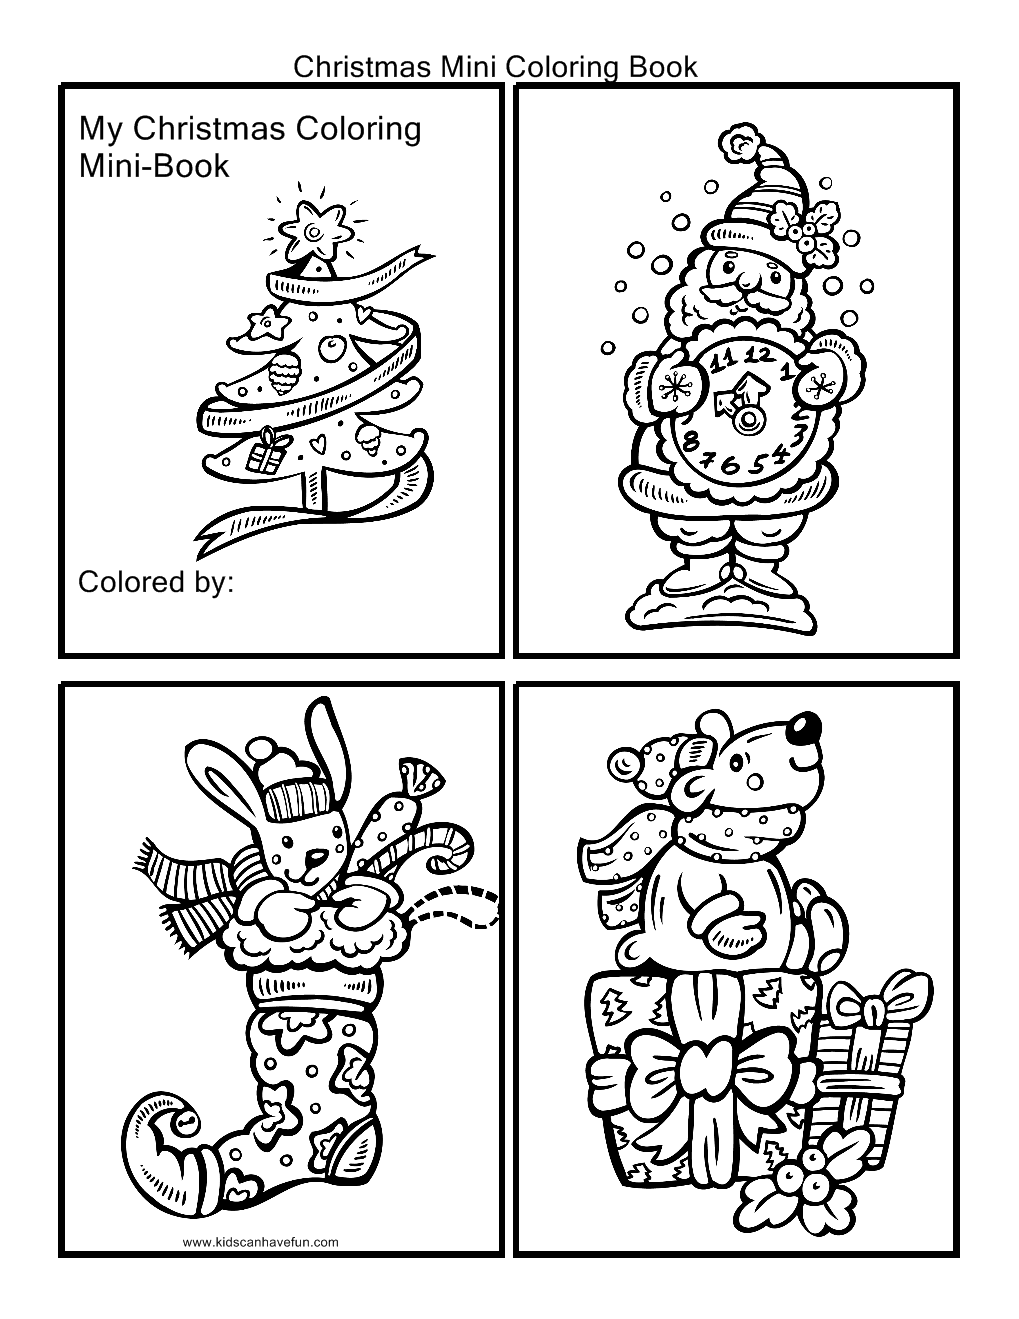 Pin by KidsCanHaveFun.com on Christmas Coloring Pages, Holiday ...